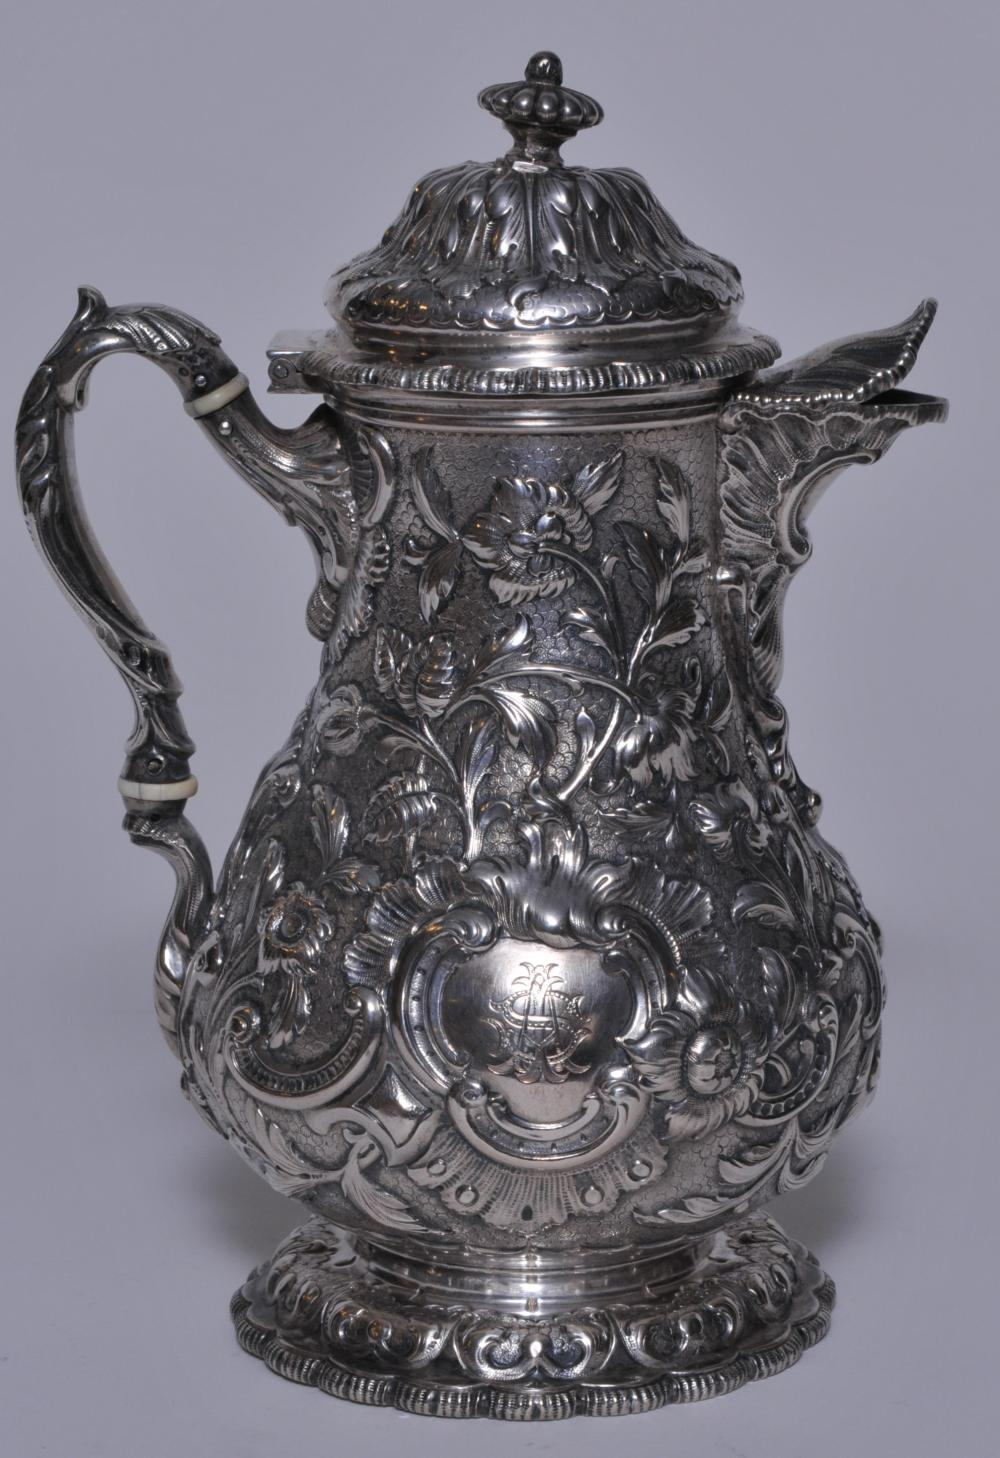 Tiffany & Co. Makers early allover floral repousse decorated covered chocolate pot. Leaf form spout. Lobated base. Cartouche with monogram. Finial pushed down into cover. Handle loose at insulators. Base pushed into body on one side. Early mark. 8-1/